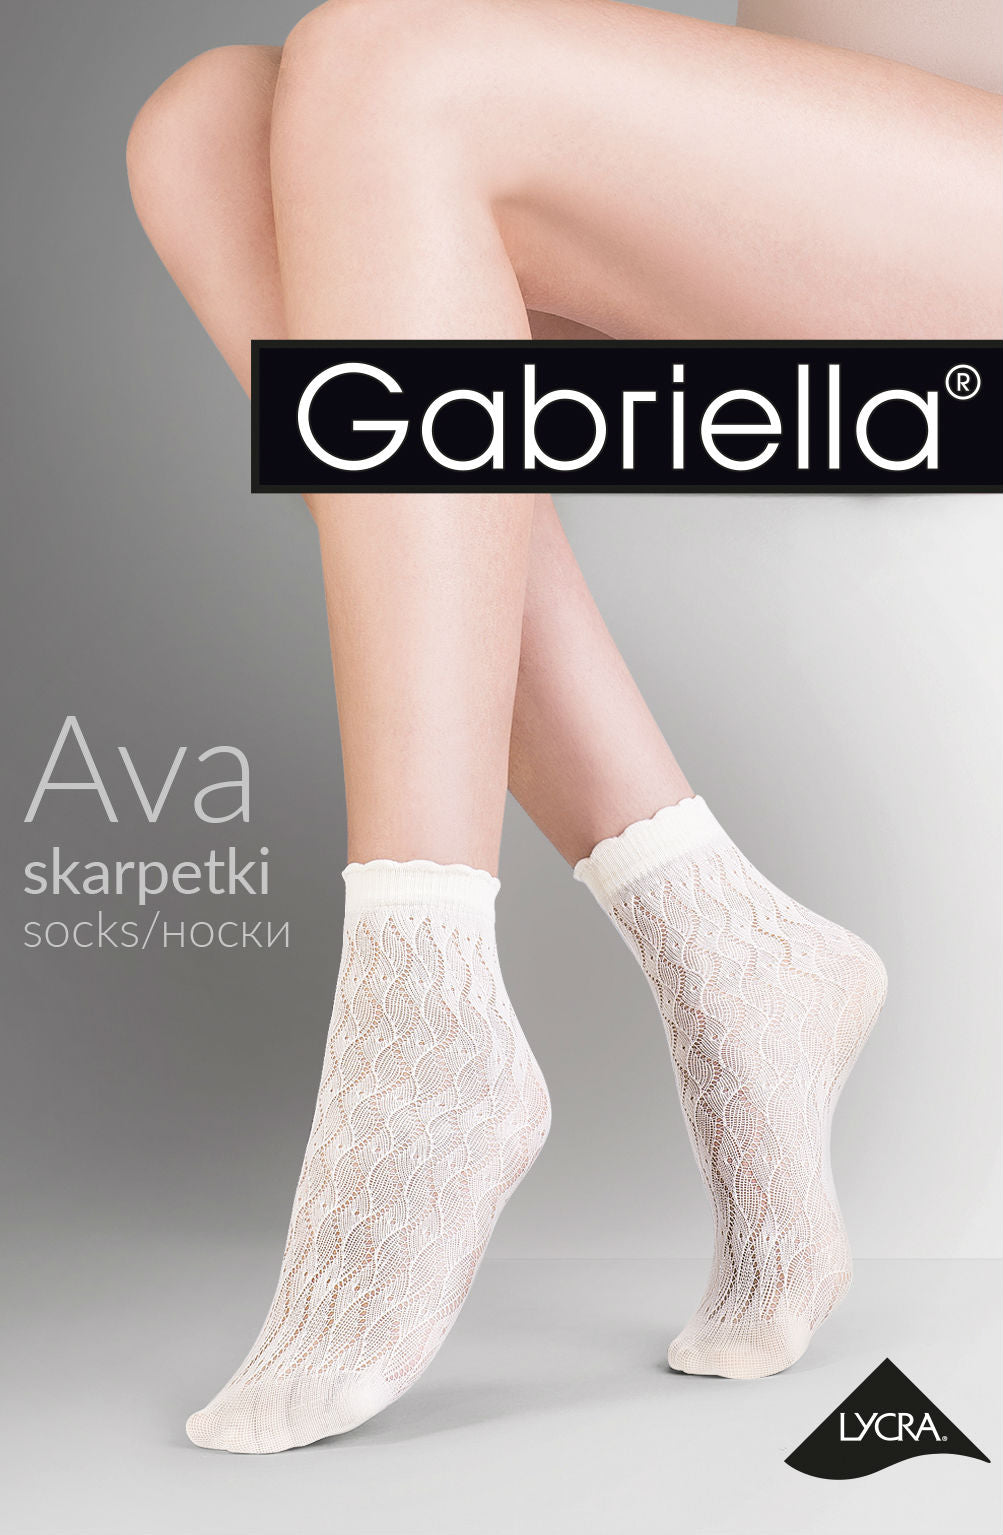 Gabriella Ava Socks 693 - Nero (Black)